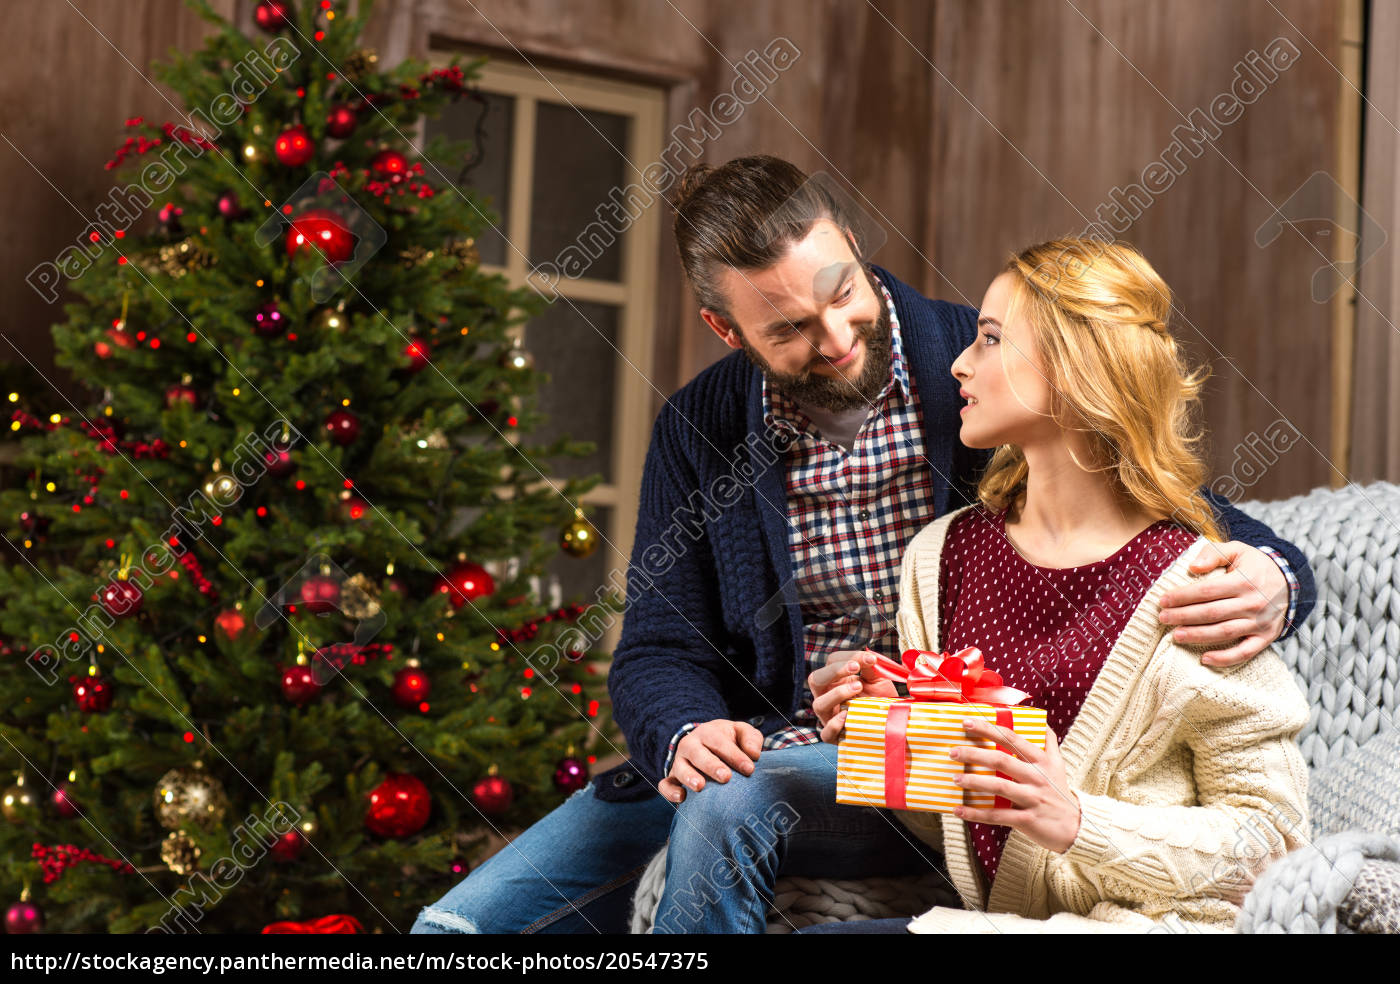 couple, sitting, with, christmas, present - 20547375